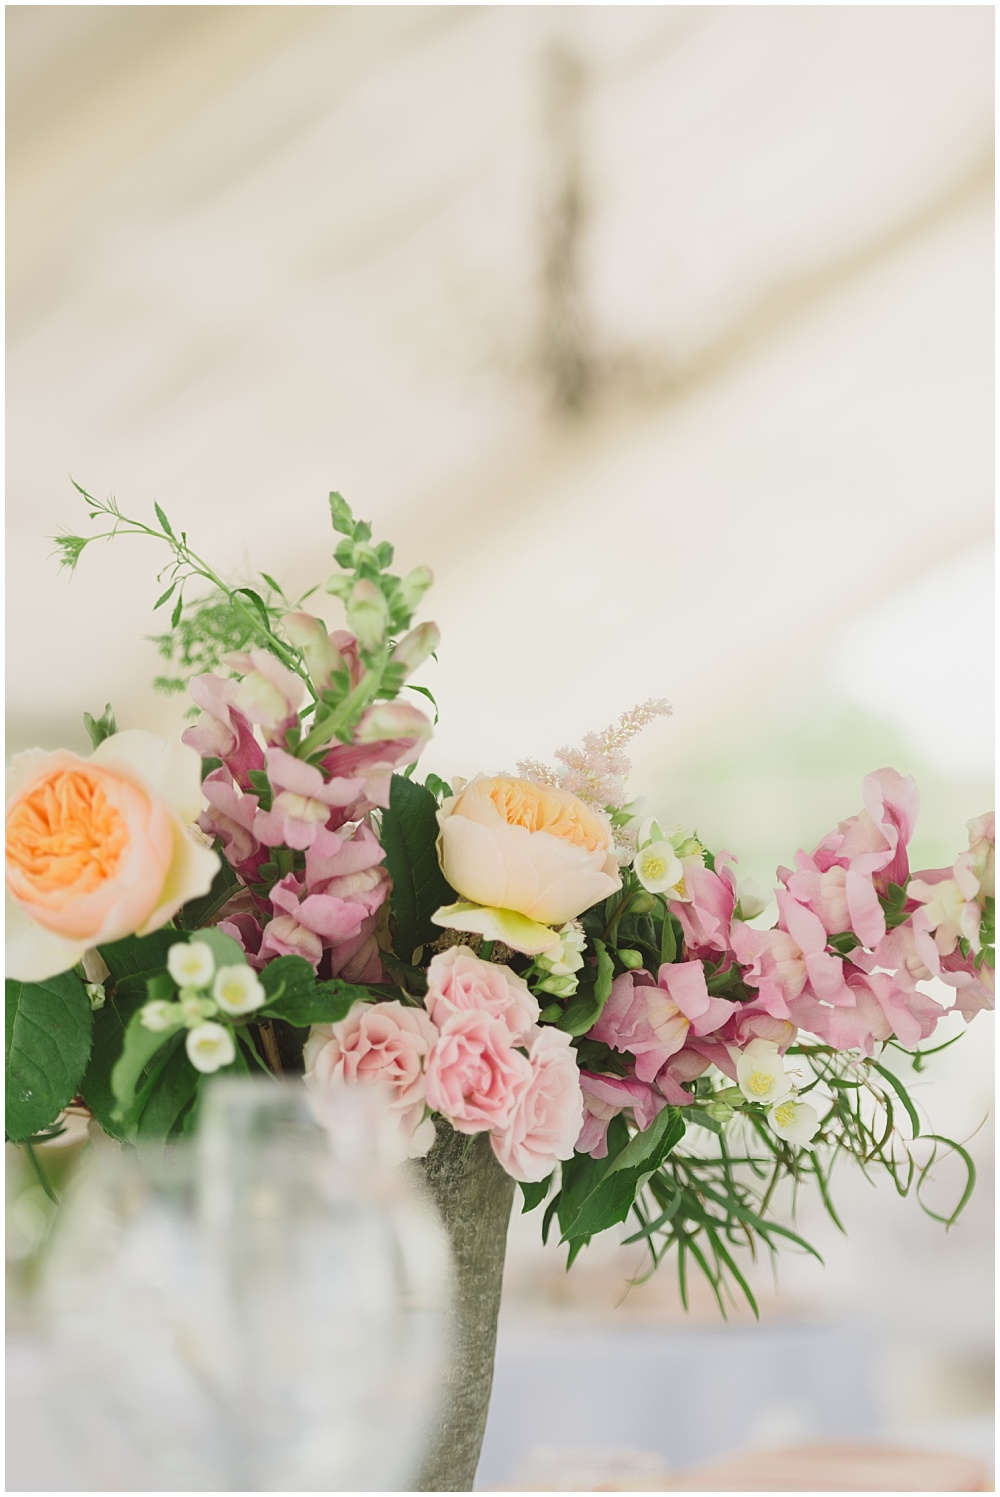 Spring floral centerpieces by Meg Catherine Flowers   Ritz Charles Garden Pavilion Wedding by Stacy Able Photography & Jessica Dum Wedding Coordination